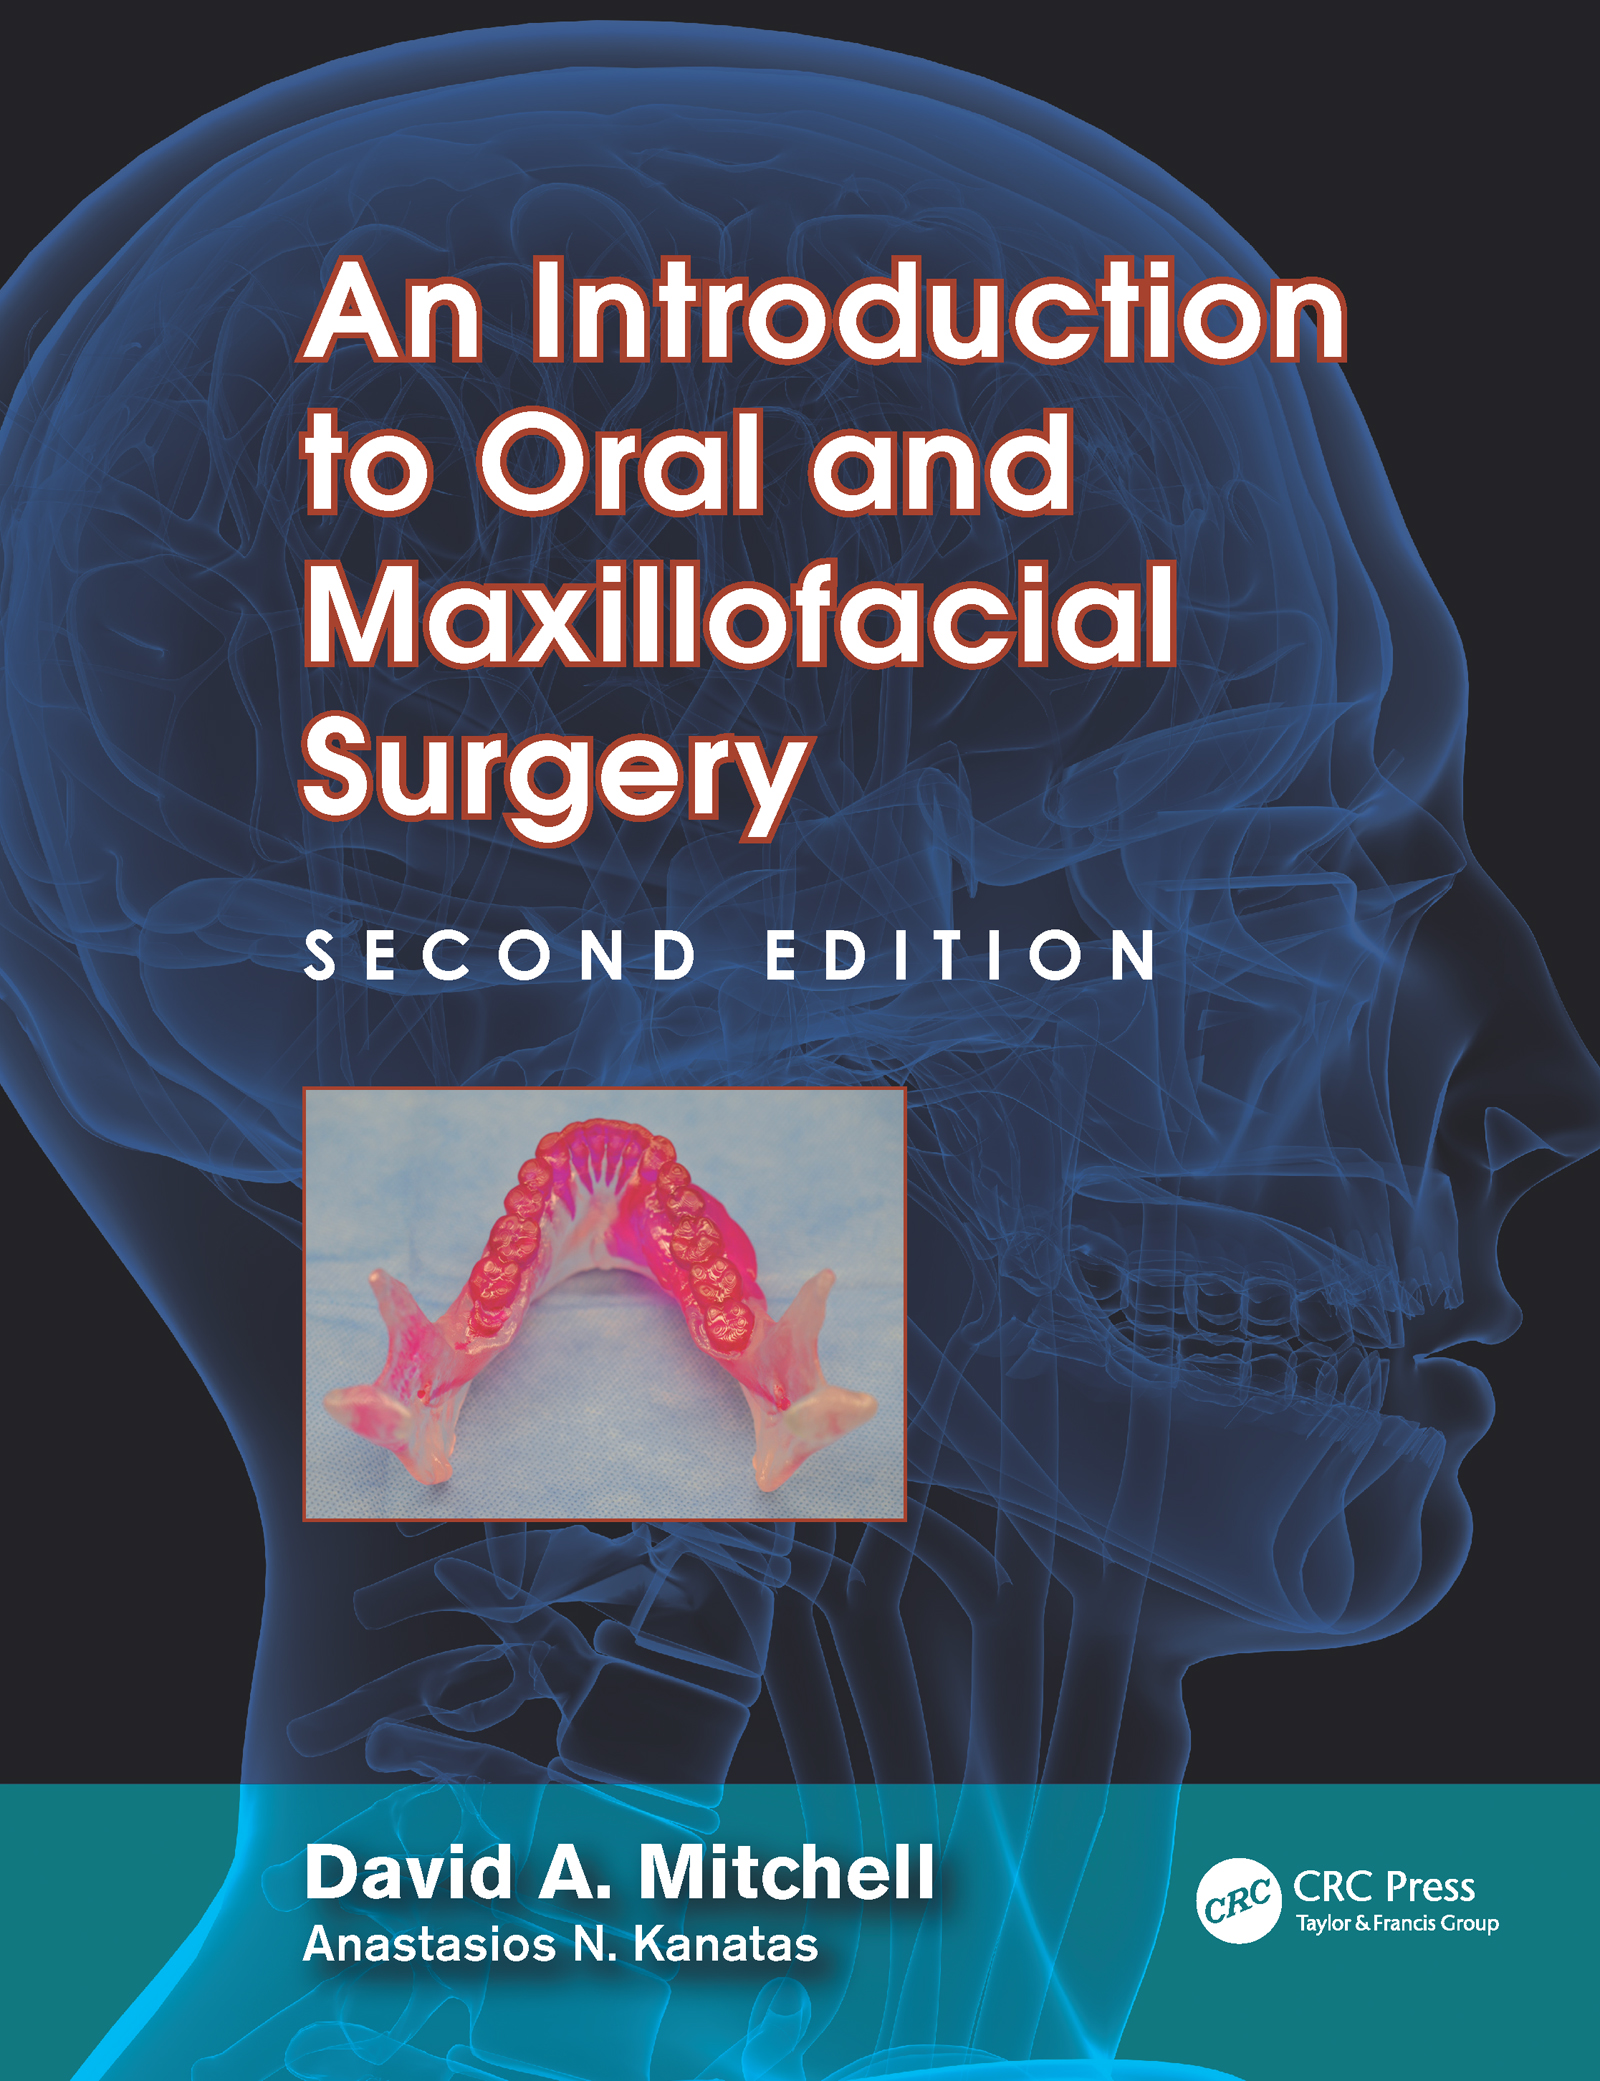 An Introduction to Oral and Maxillofacial Surgery